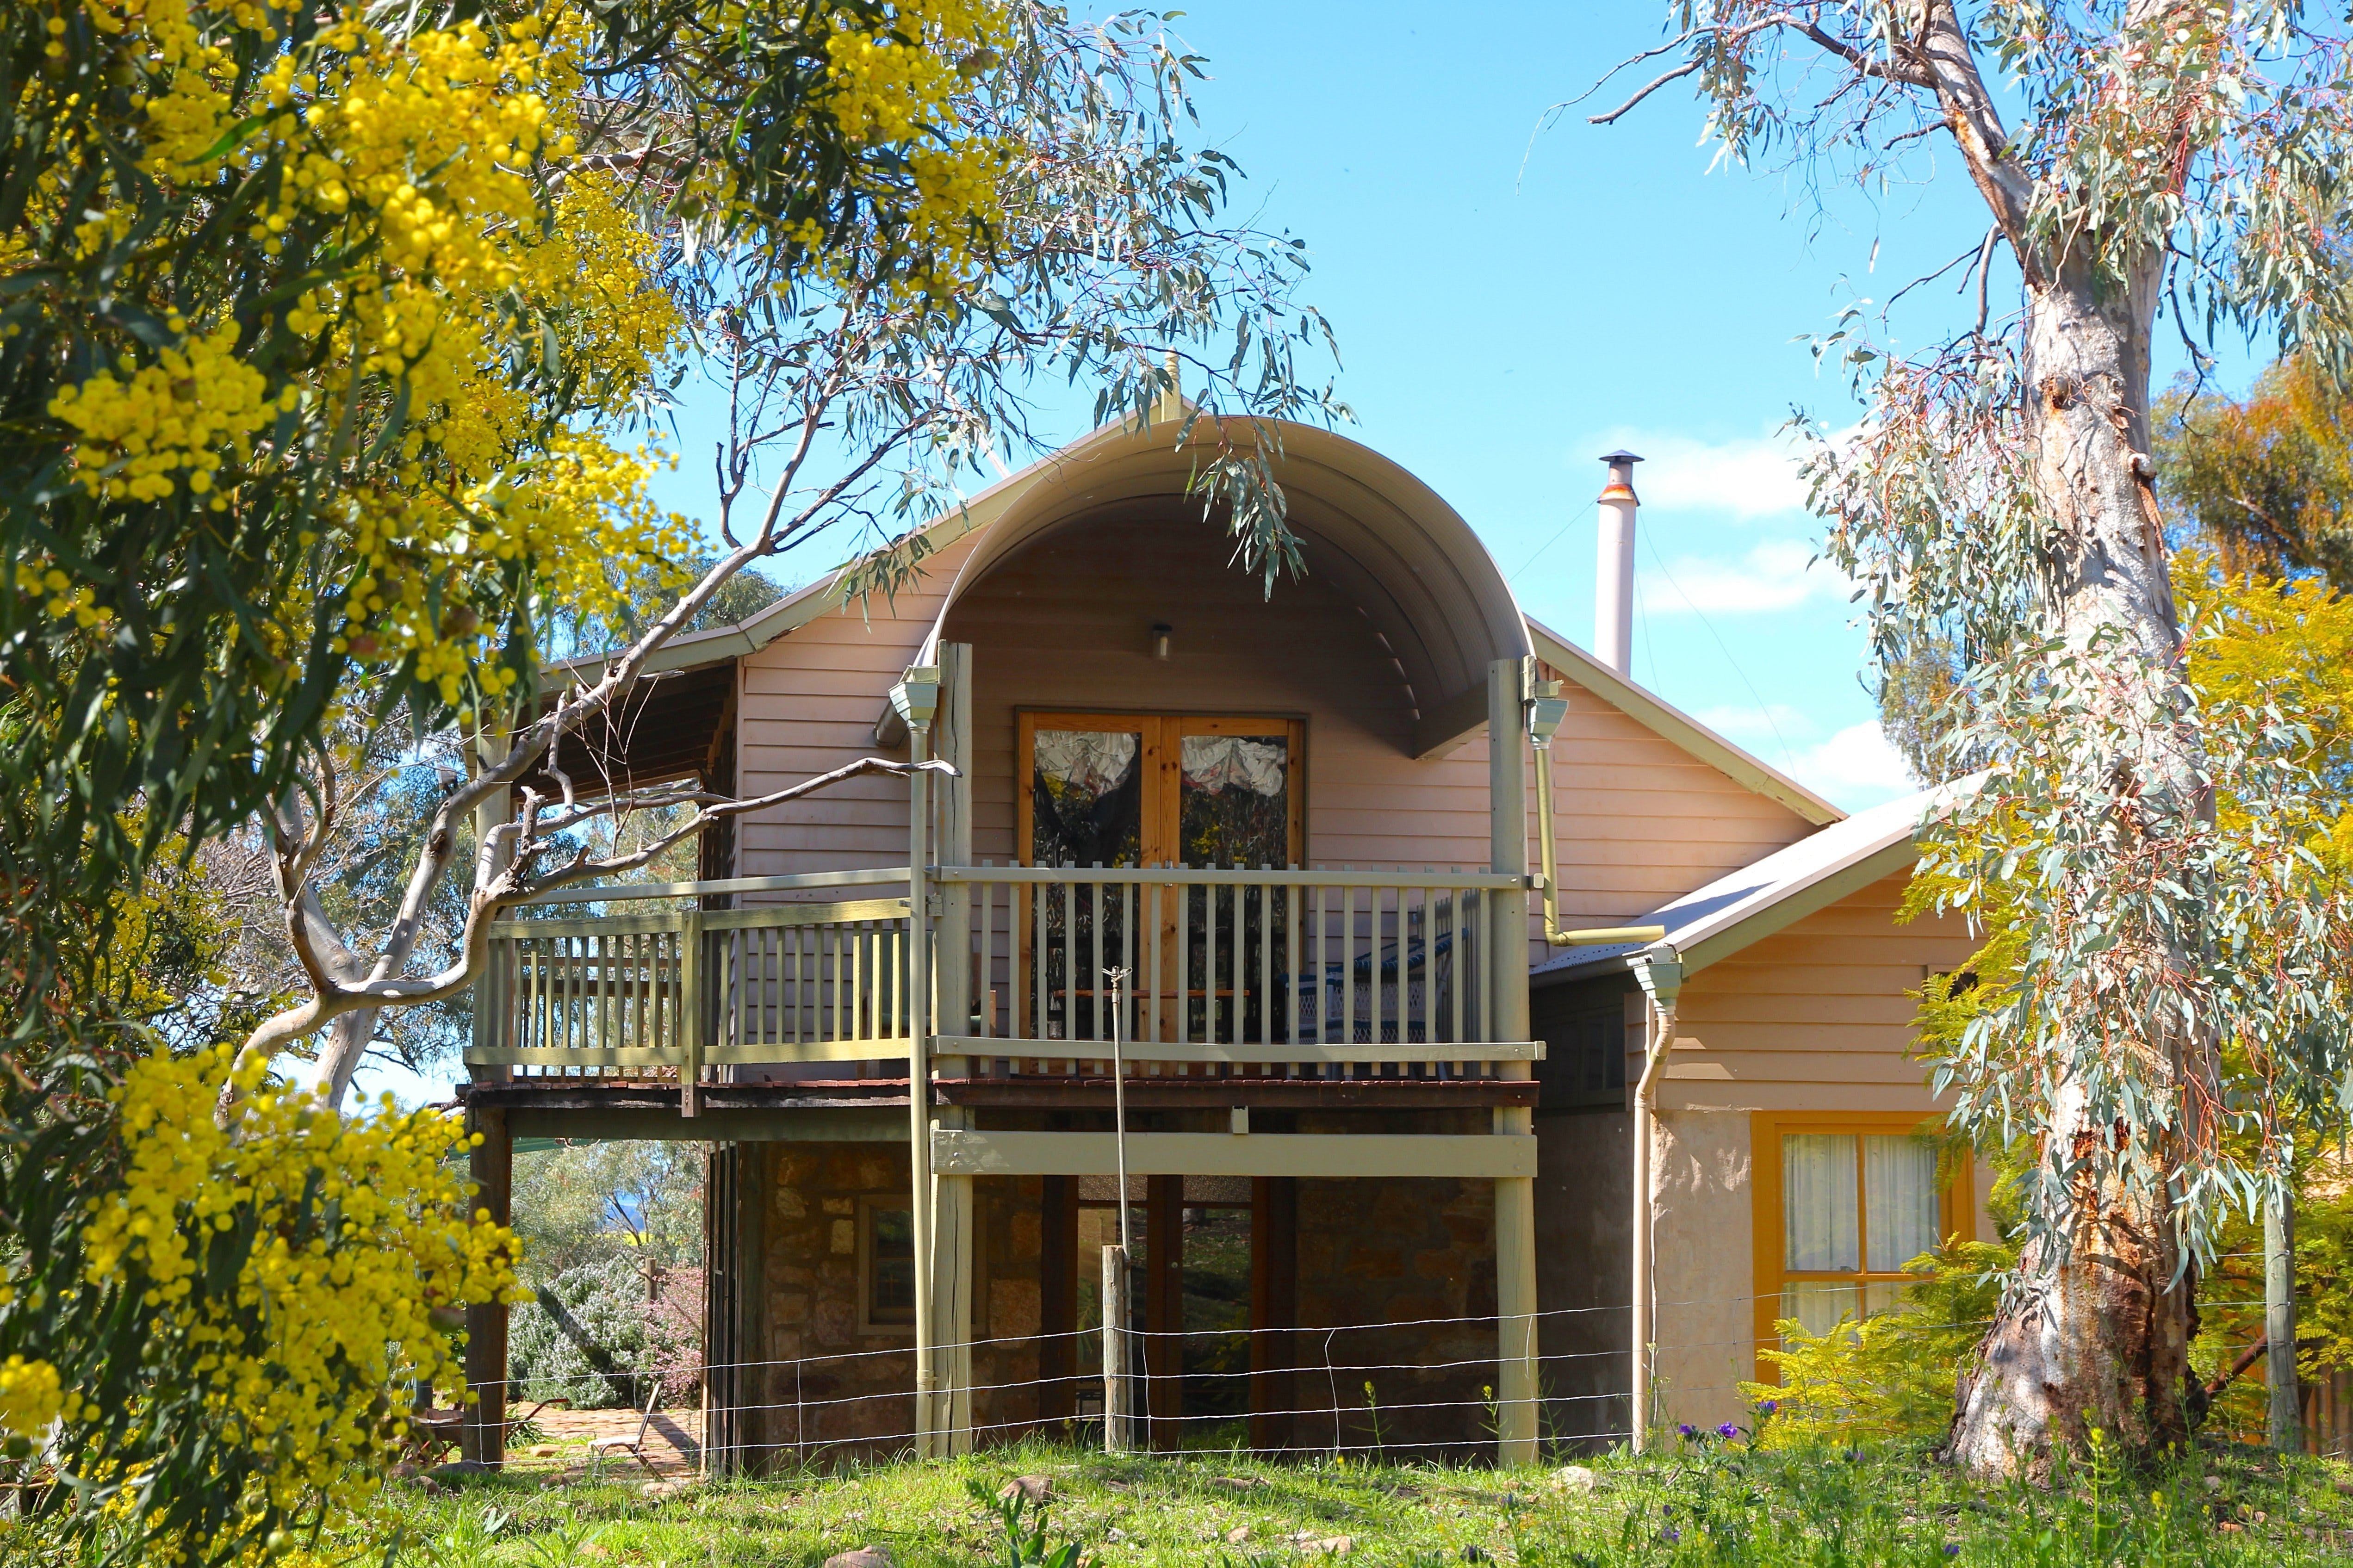 Kookaburra Creek Retreat - Foster Accommodation